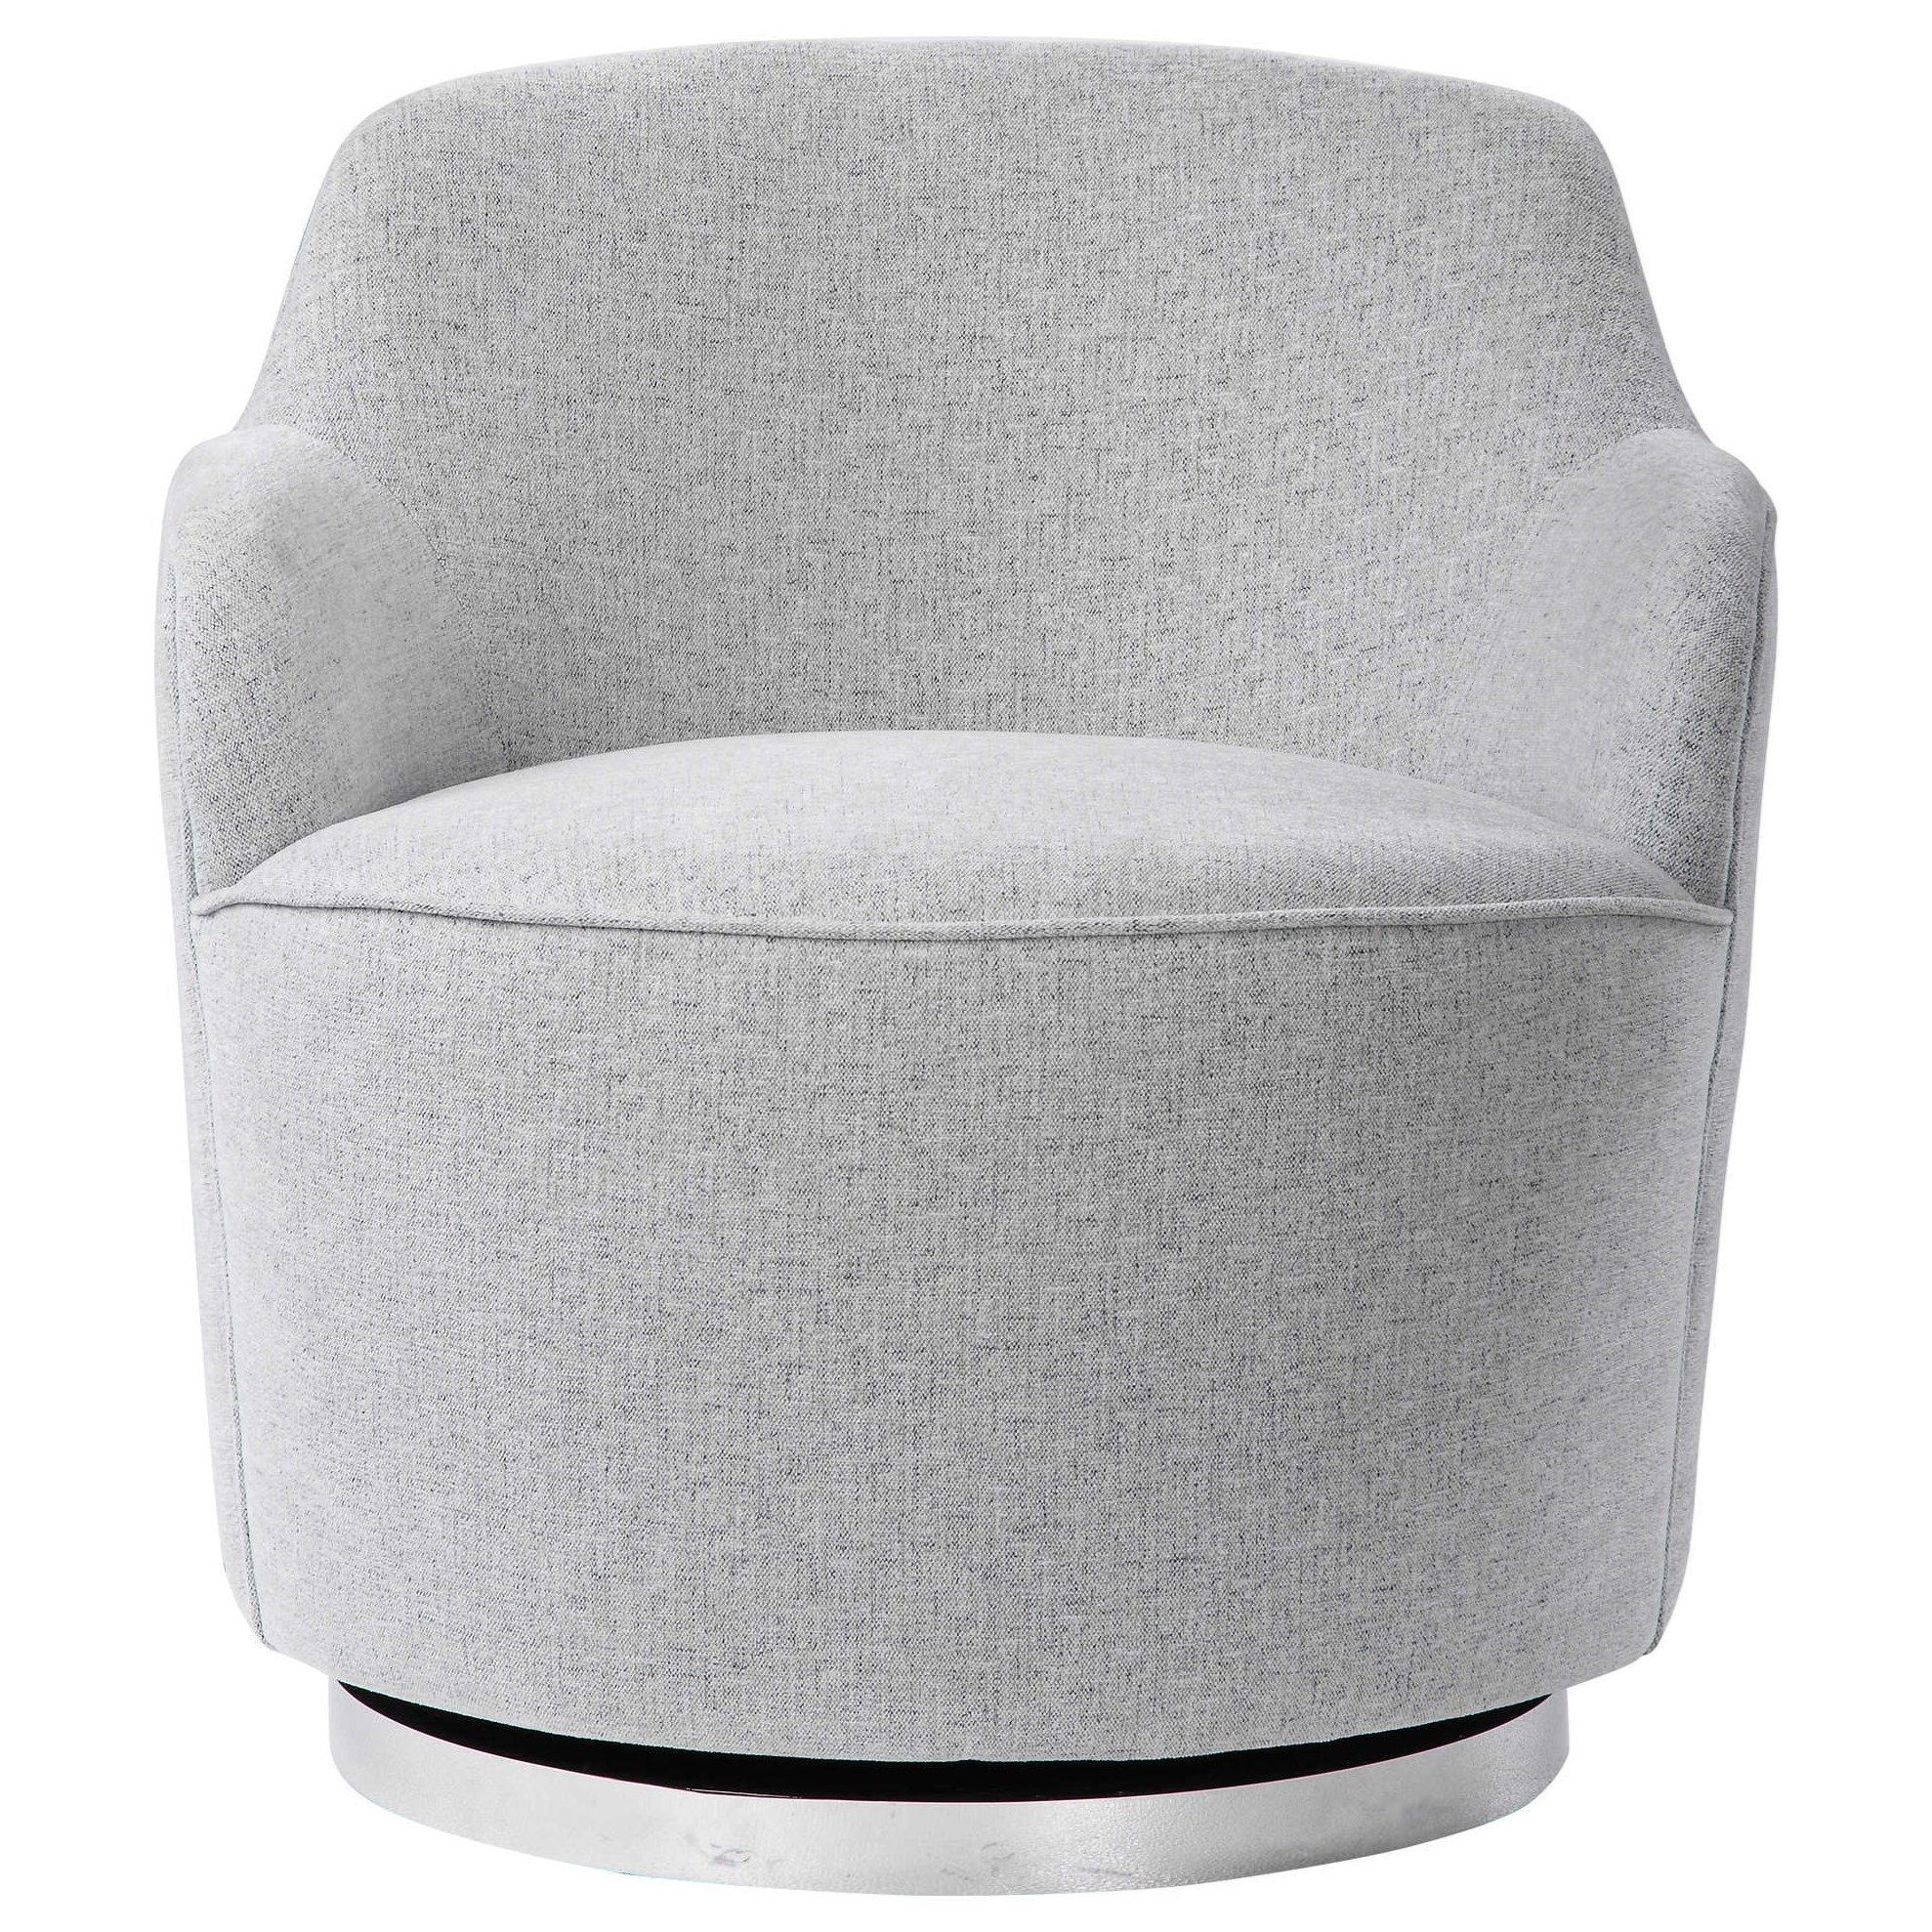 Accent Furniture - Accent Chairs Hobart Casual Swivel Chair by Uttermost at Upper Room Home Furnishings